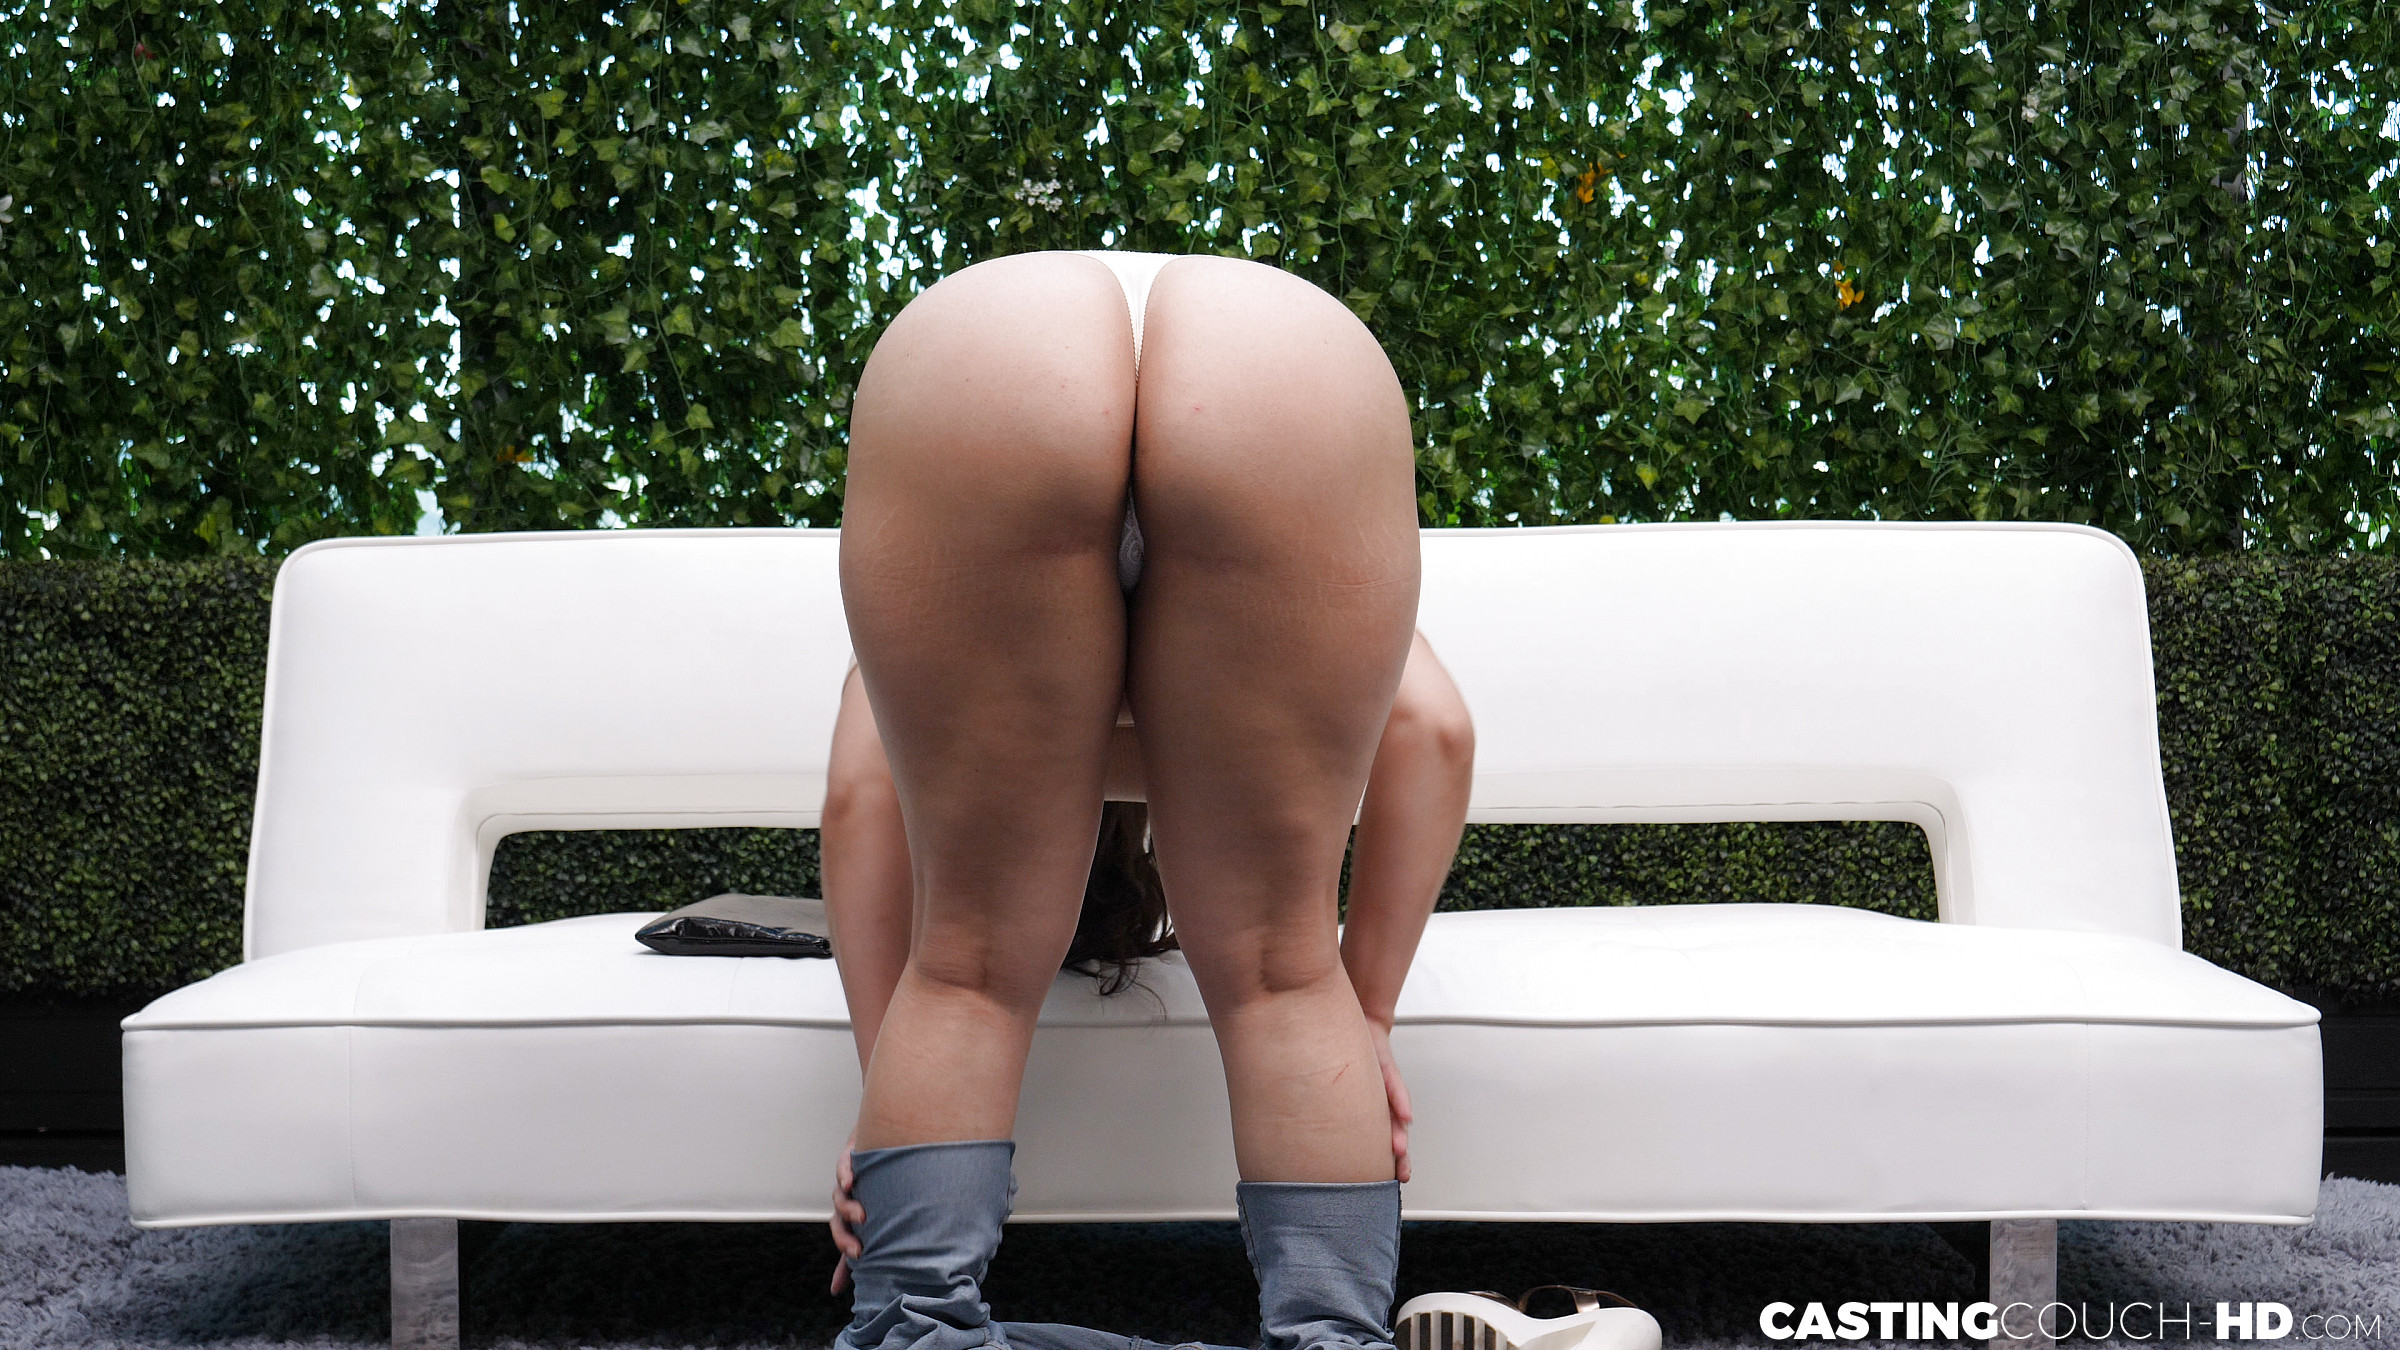 Castingcouch-hd soon